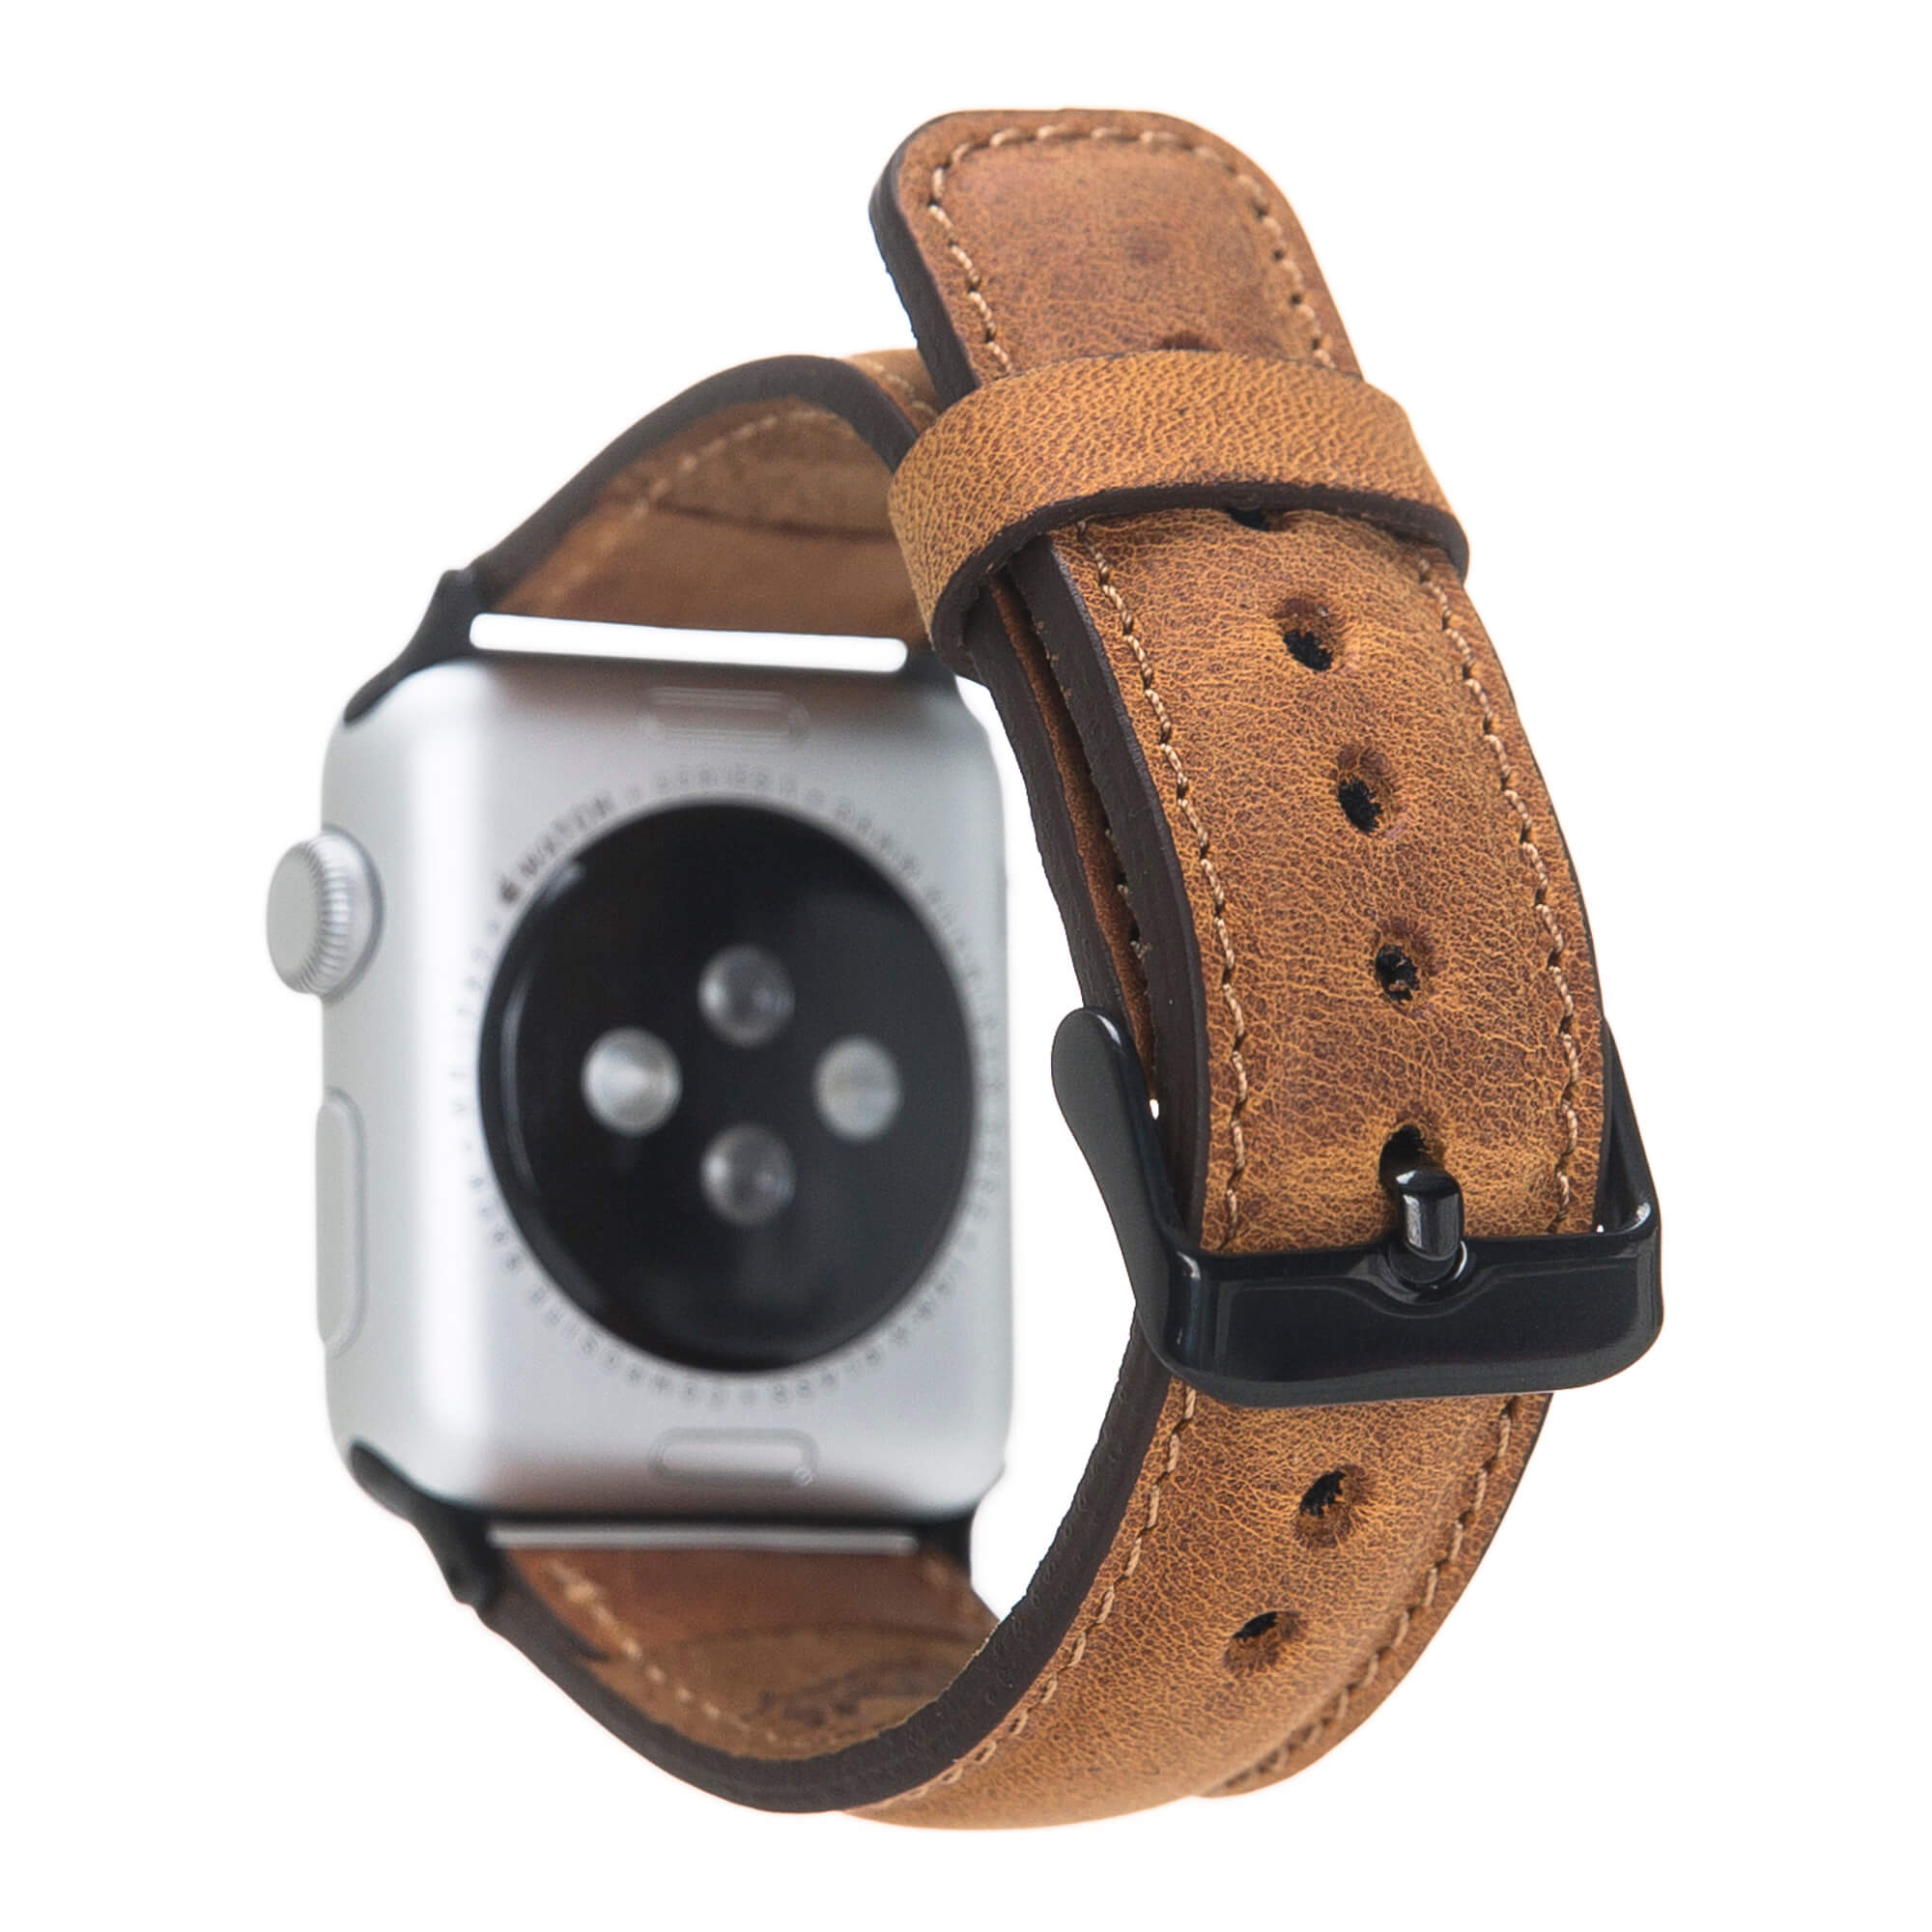 Lederarmband für das Apple Watch Series 1-6 + SE I Camel Braun 42mm/44mm mit Space Grau Connectoren